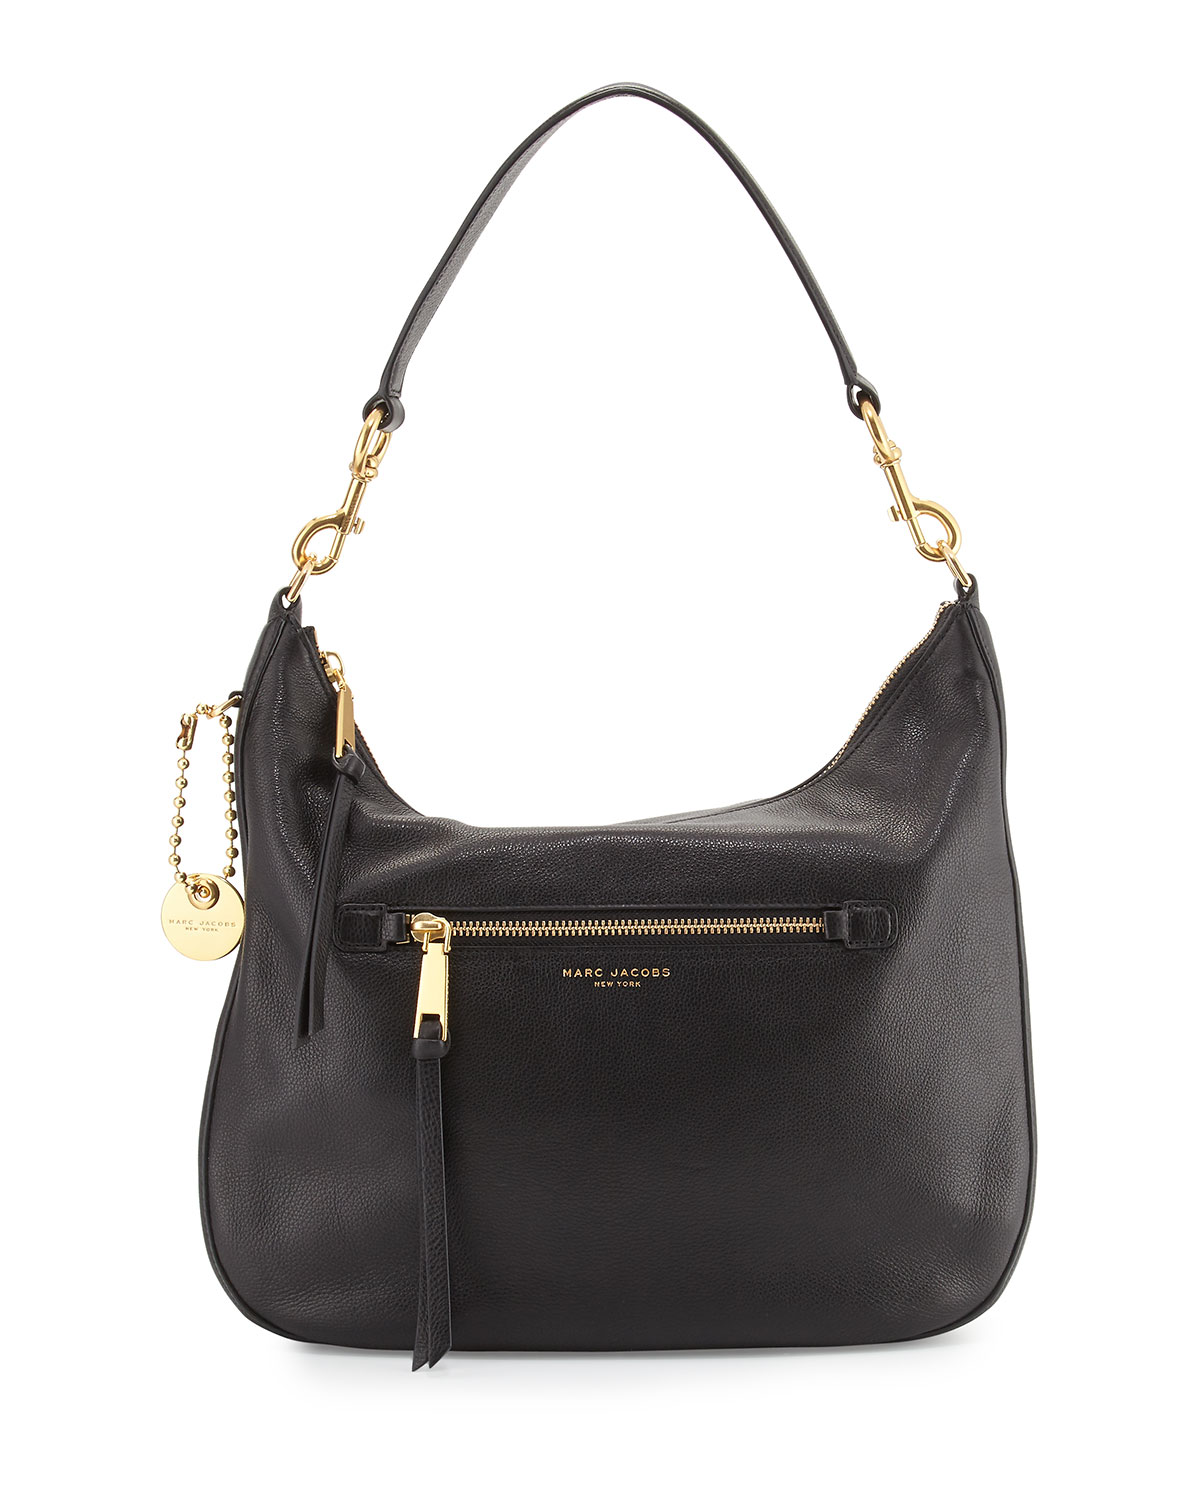 Marc Jacobs Recruit Leather Hobo Bag, Black   Neiman Marcus aa2b2f15d5